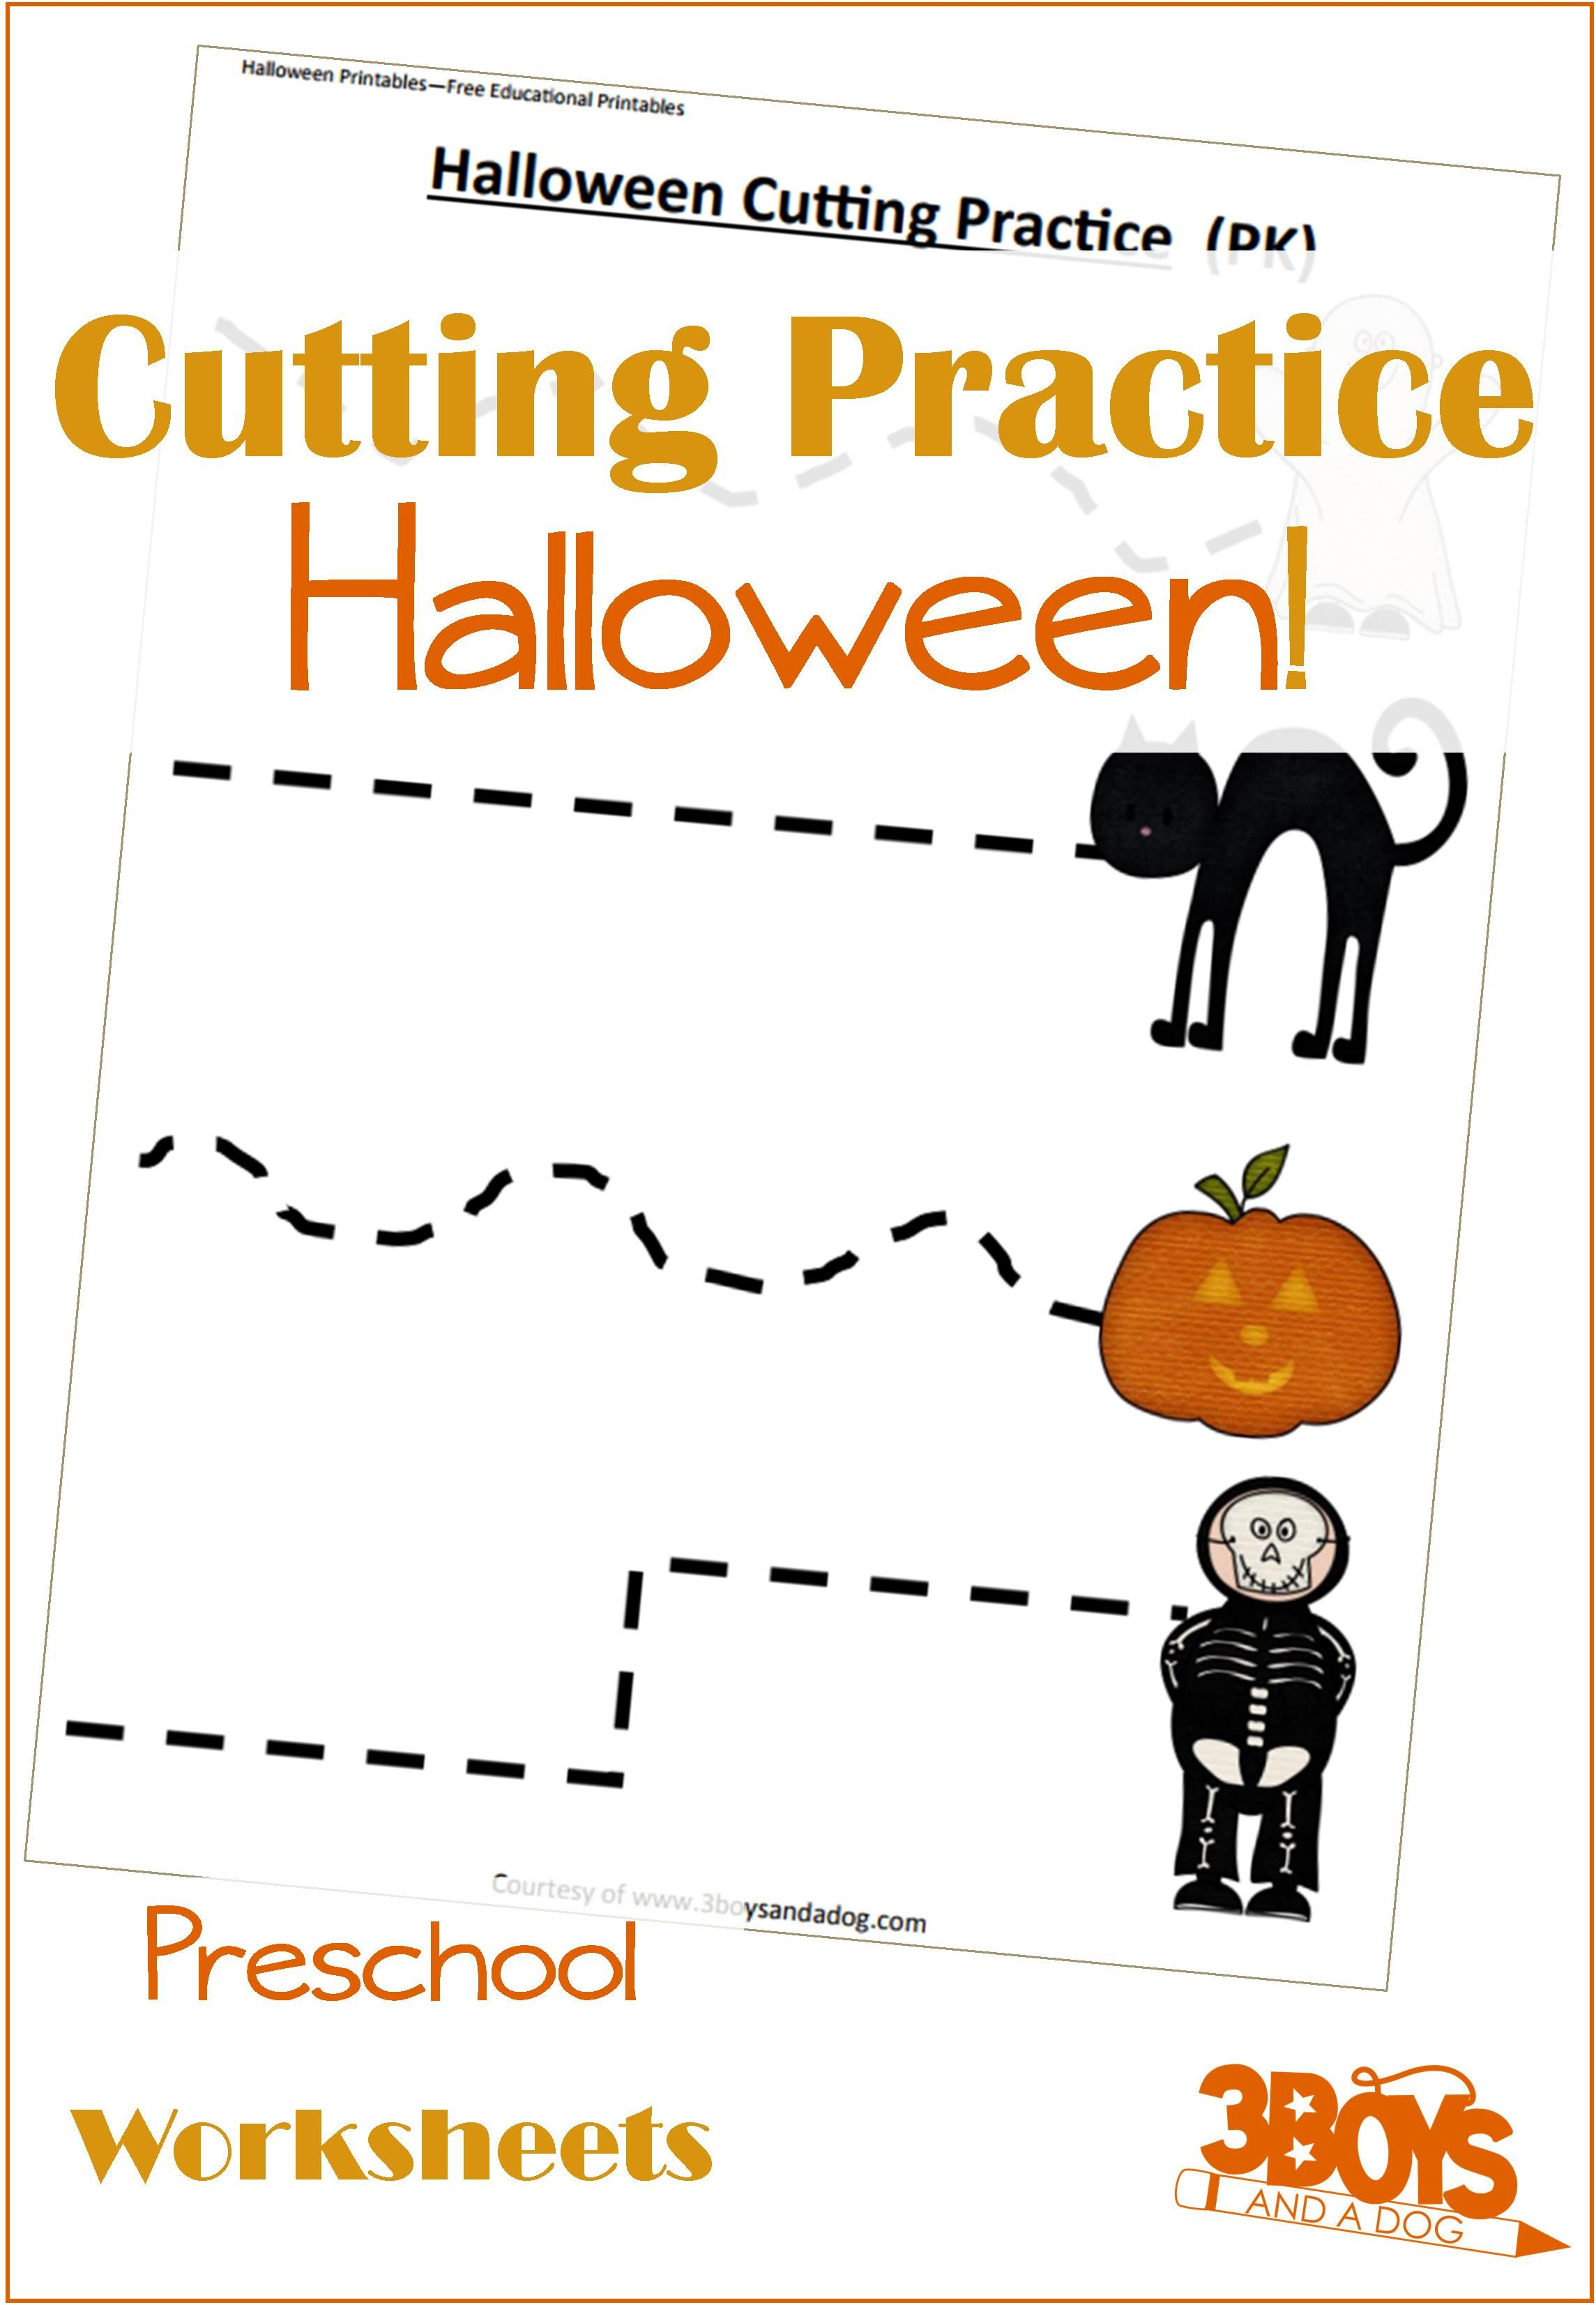 Pin On Halloween Recipes Crafts Education